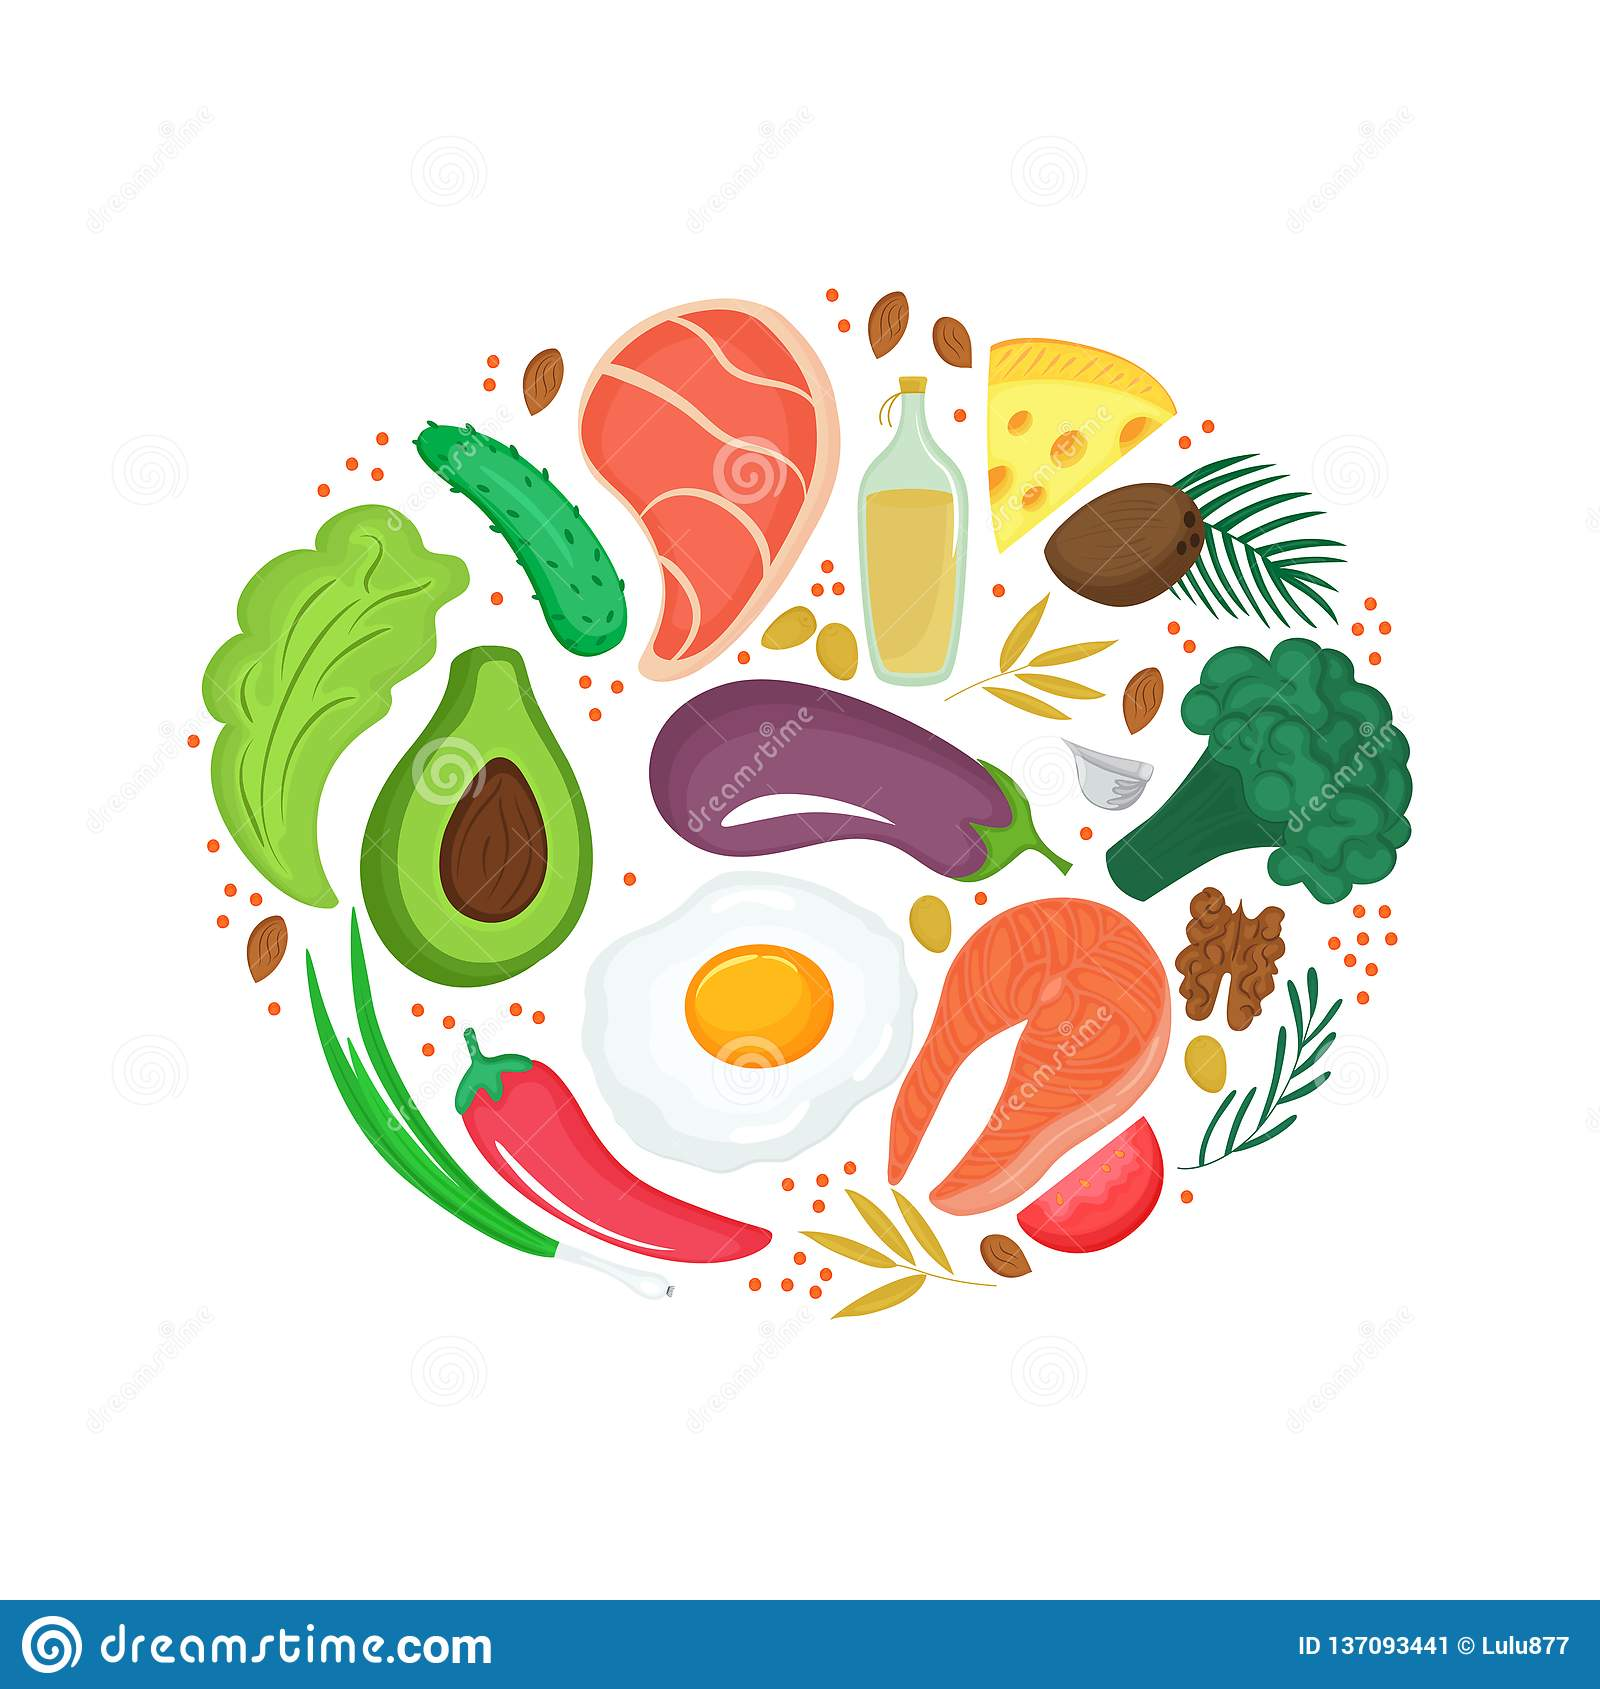 Keto nutrition. Ketogenic diet banner with organic vegetables, nuts and other healthy foods. Low carb dieting